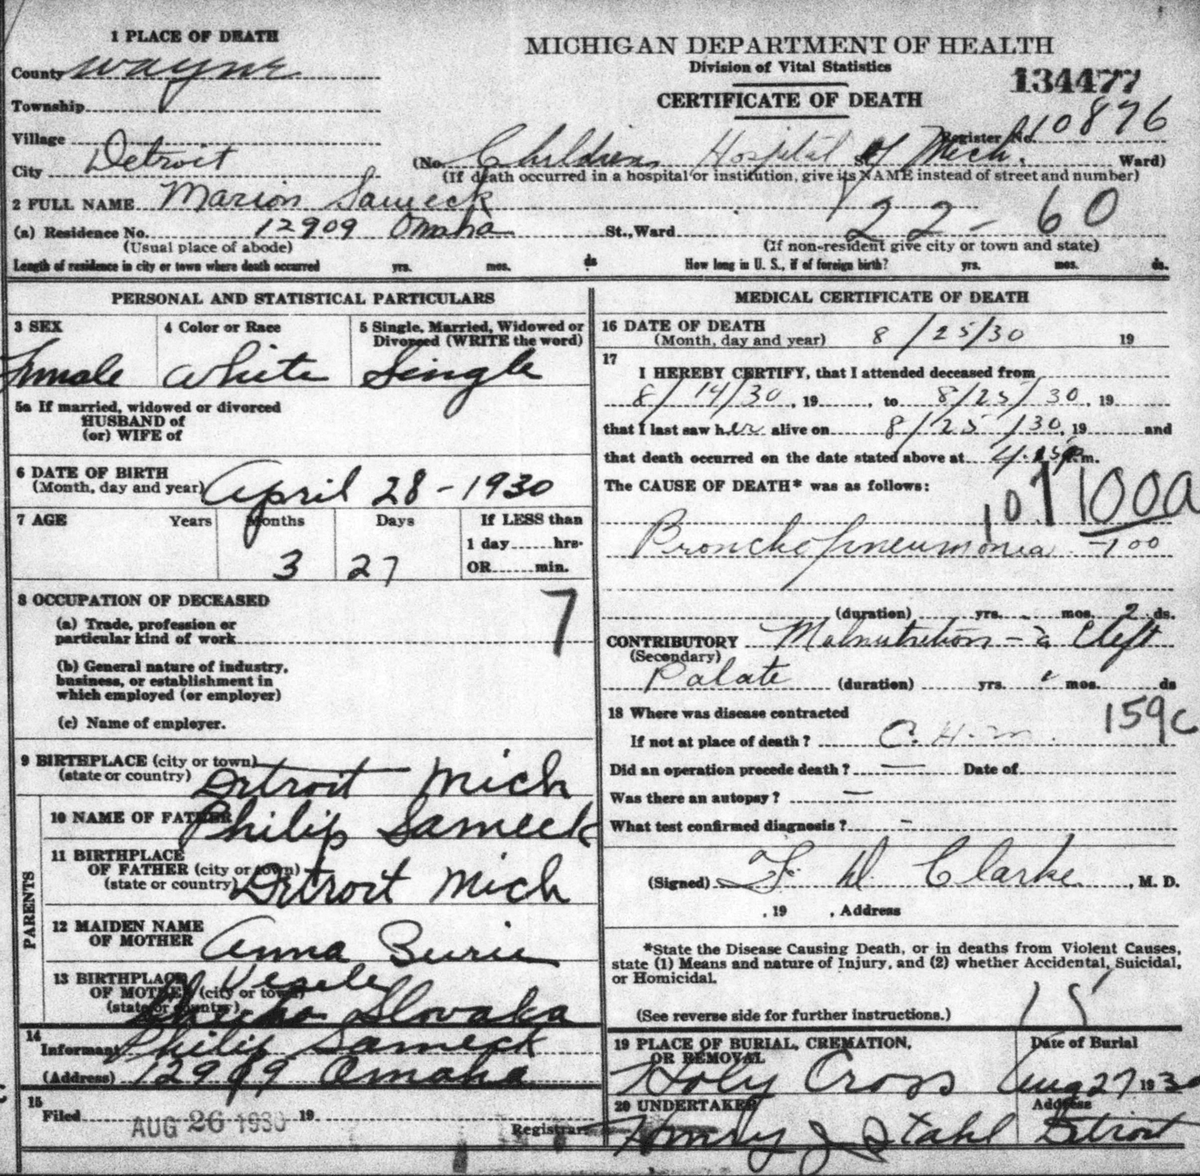 Documents Death Certificate For Marion Sameck 25 August 1930